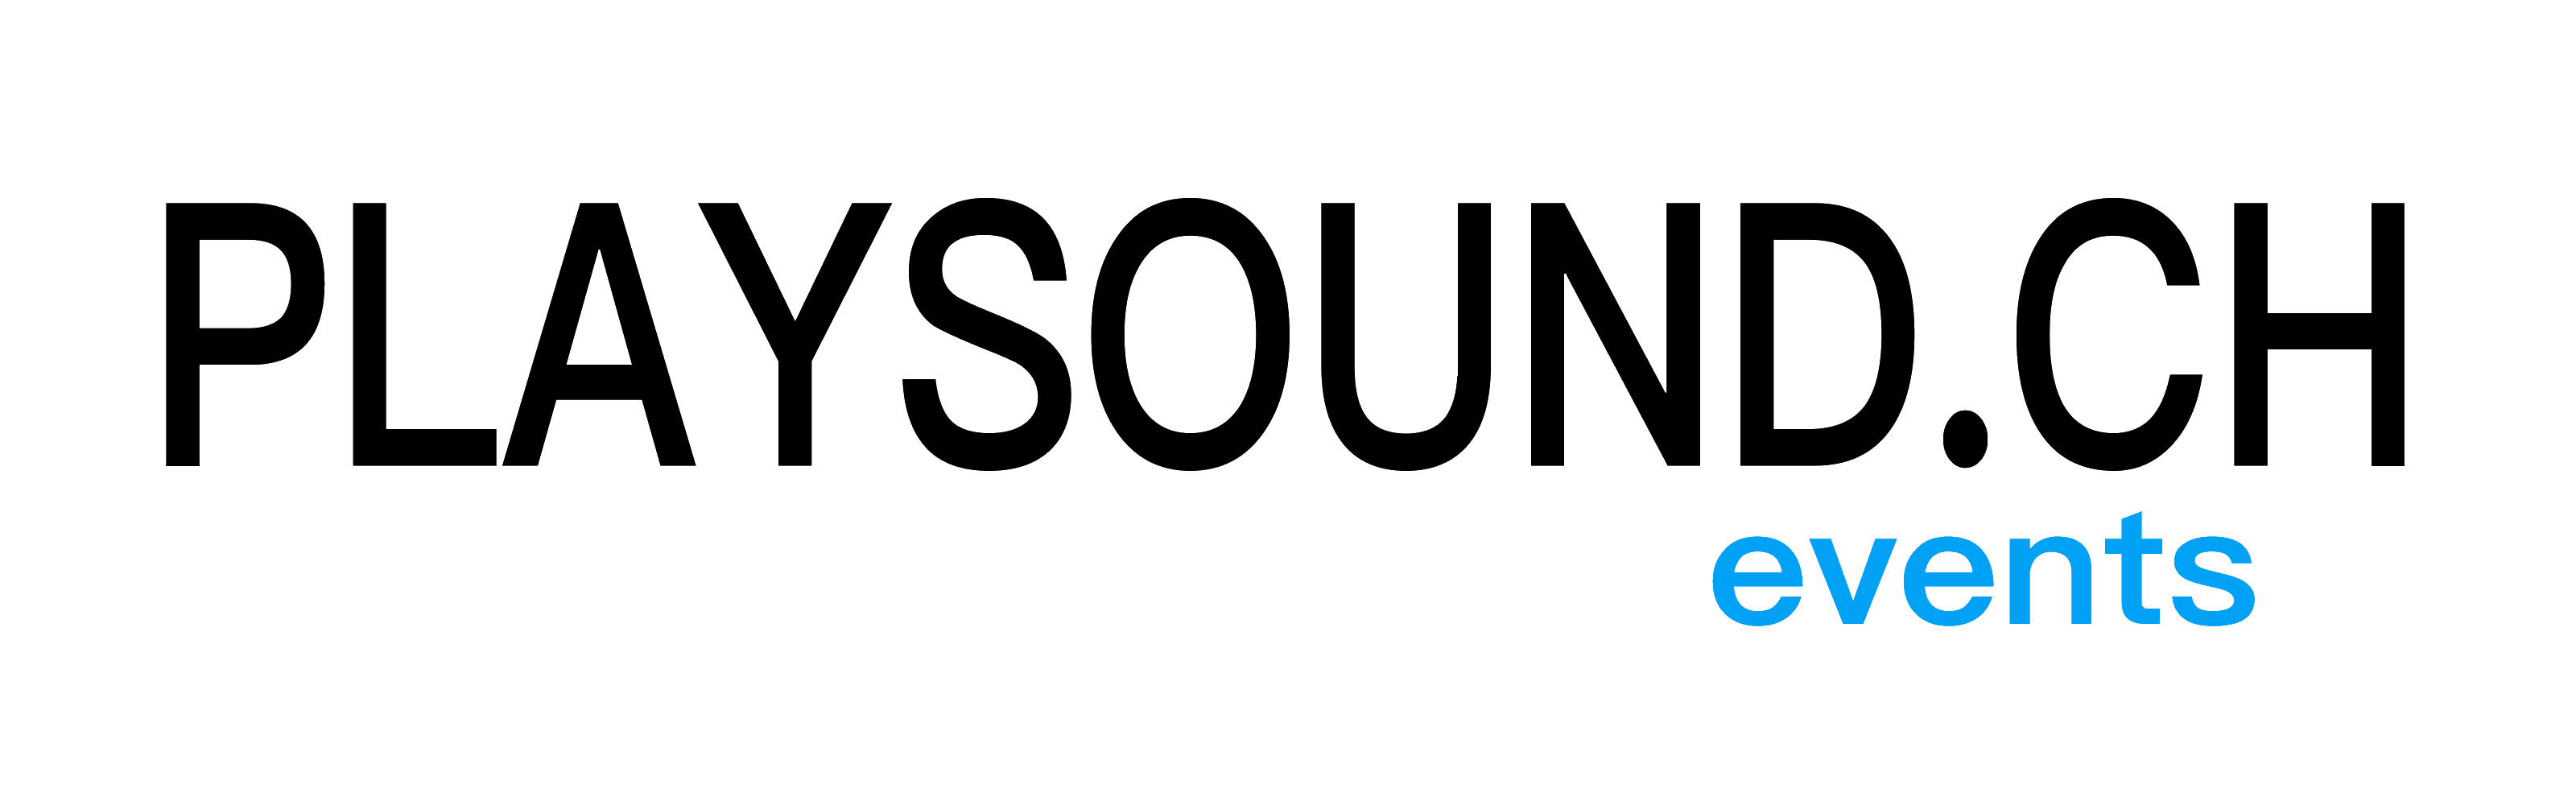 Playsound.ch Events